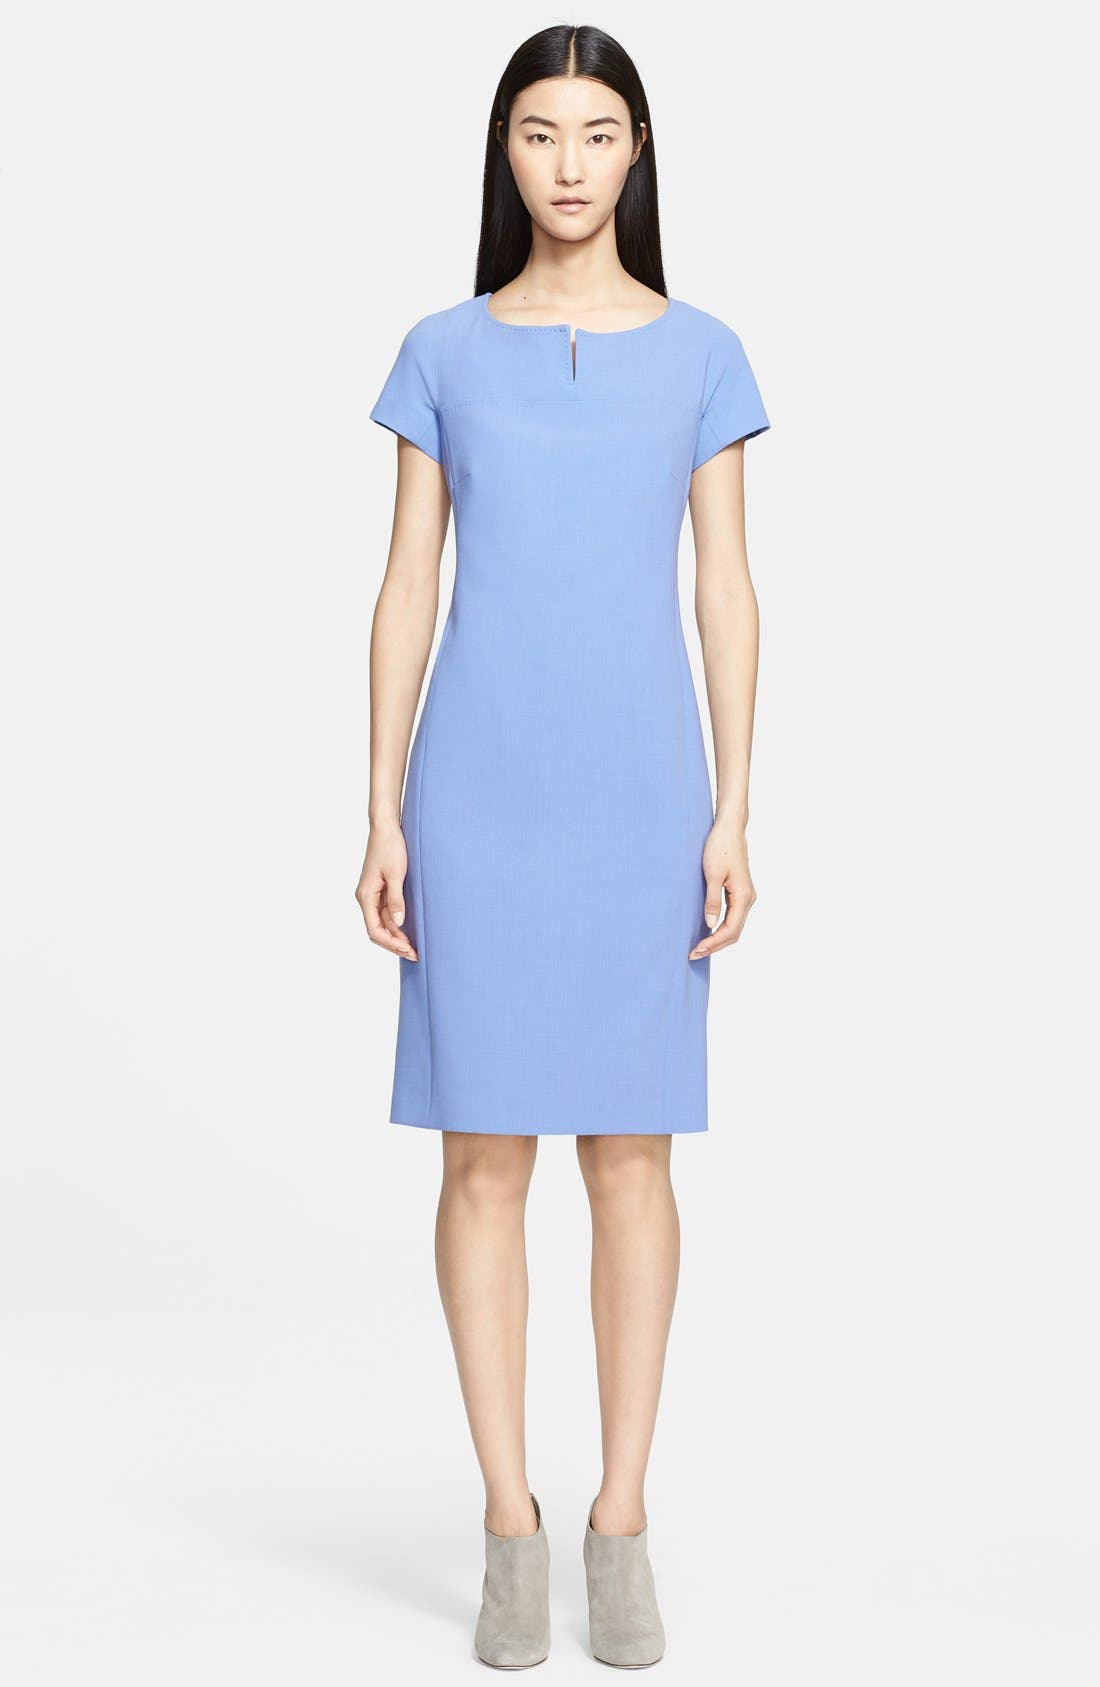 Alternate Image 1 Selected - Max Mara 'Fiamma Doppio' Wool Crepe Dress